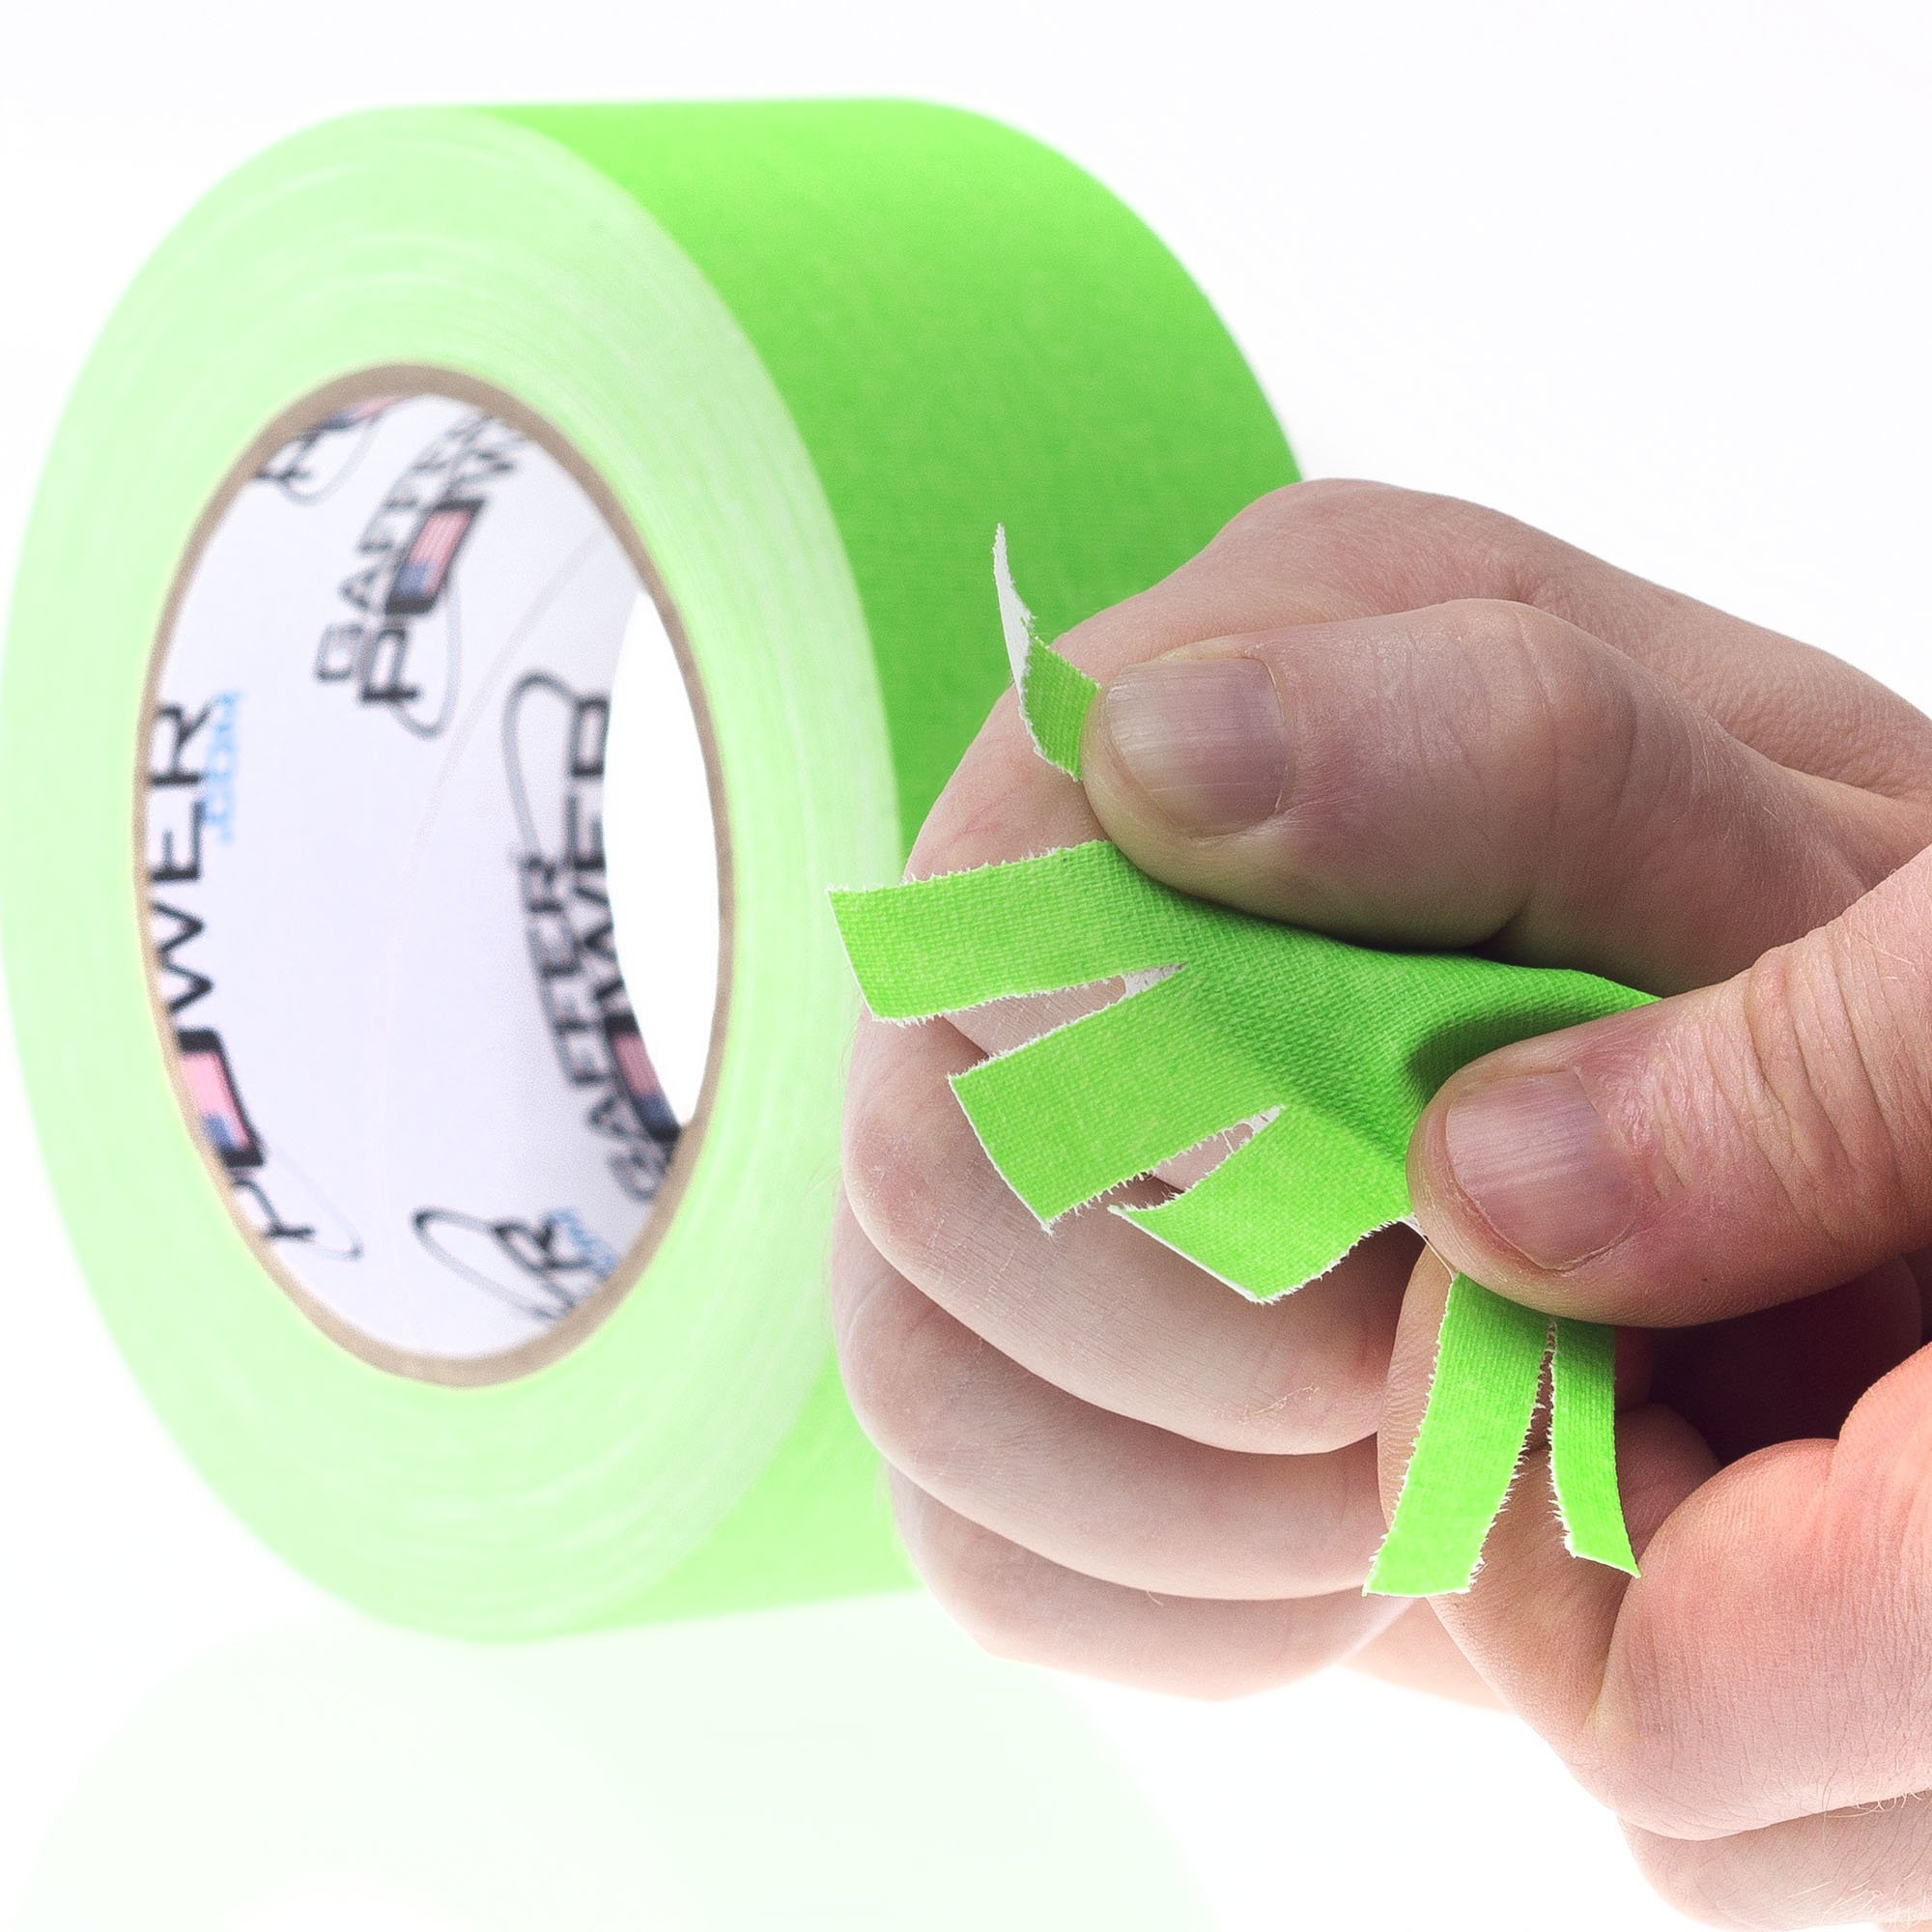 ce0fe2f8c4 REAL Professional Grade Gaffer Tape by Gaffer Power - Made in the USA    GREEN FLUORESCENT 2 In X 30 Yds - Heavy Duty Gaffers Tape - Non-Reflective  ...